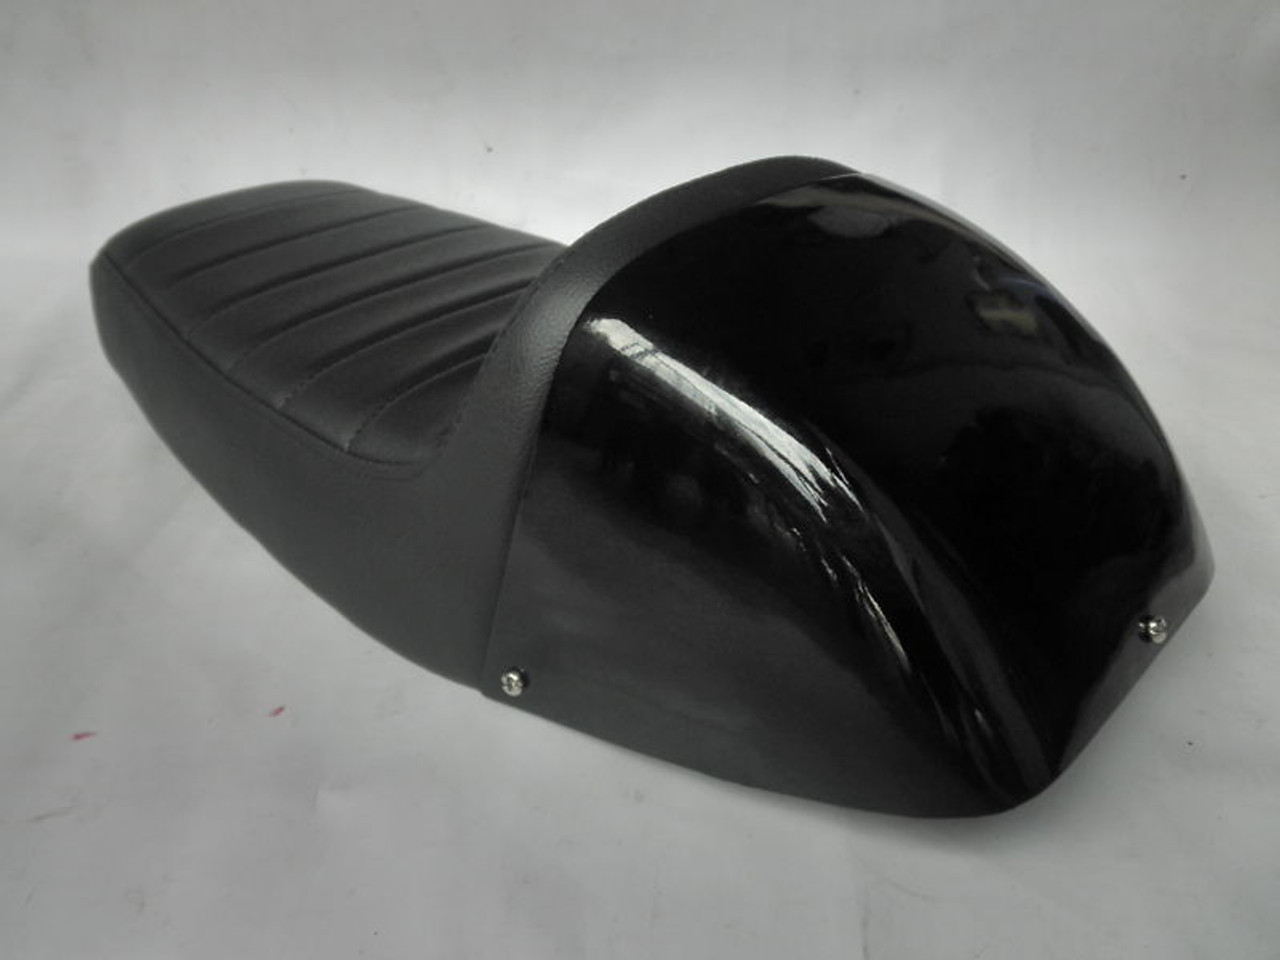 1972 - 1976 Honda CB750 K2 to K6 Cafe Racer Motorcycle Seat with Metal Cowl #2720